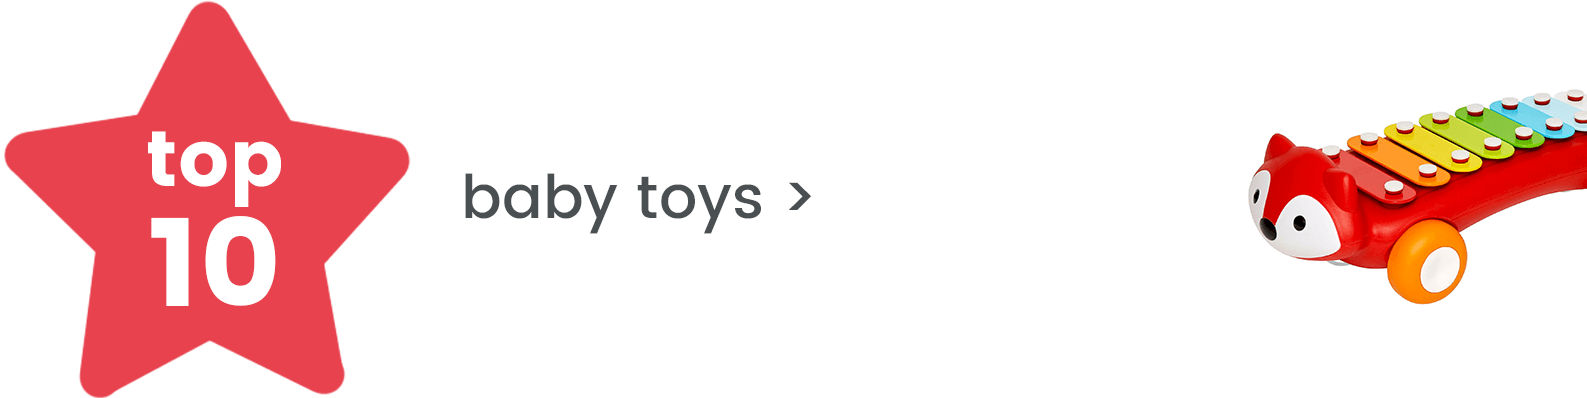 top 10 baby toys